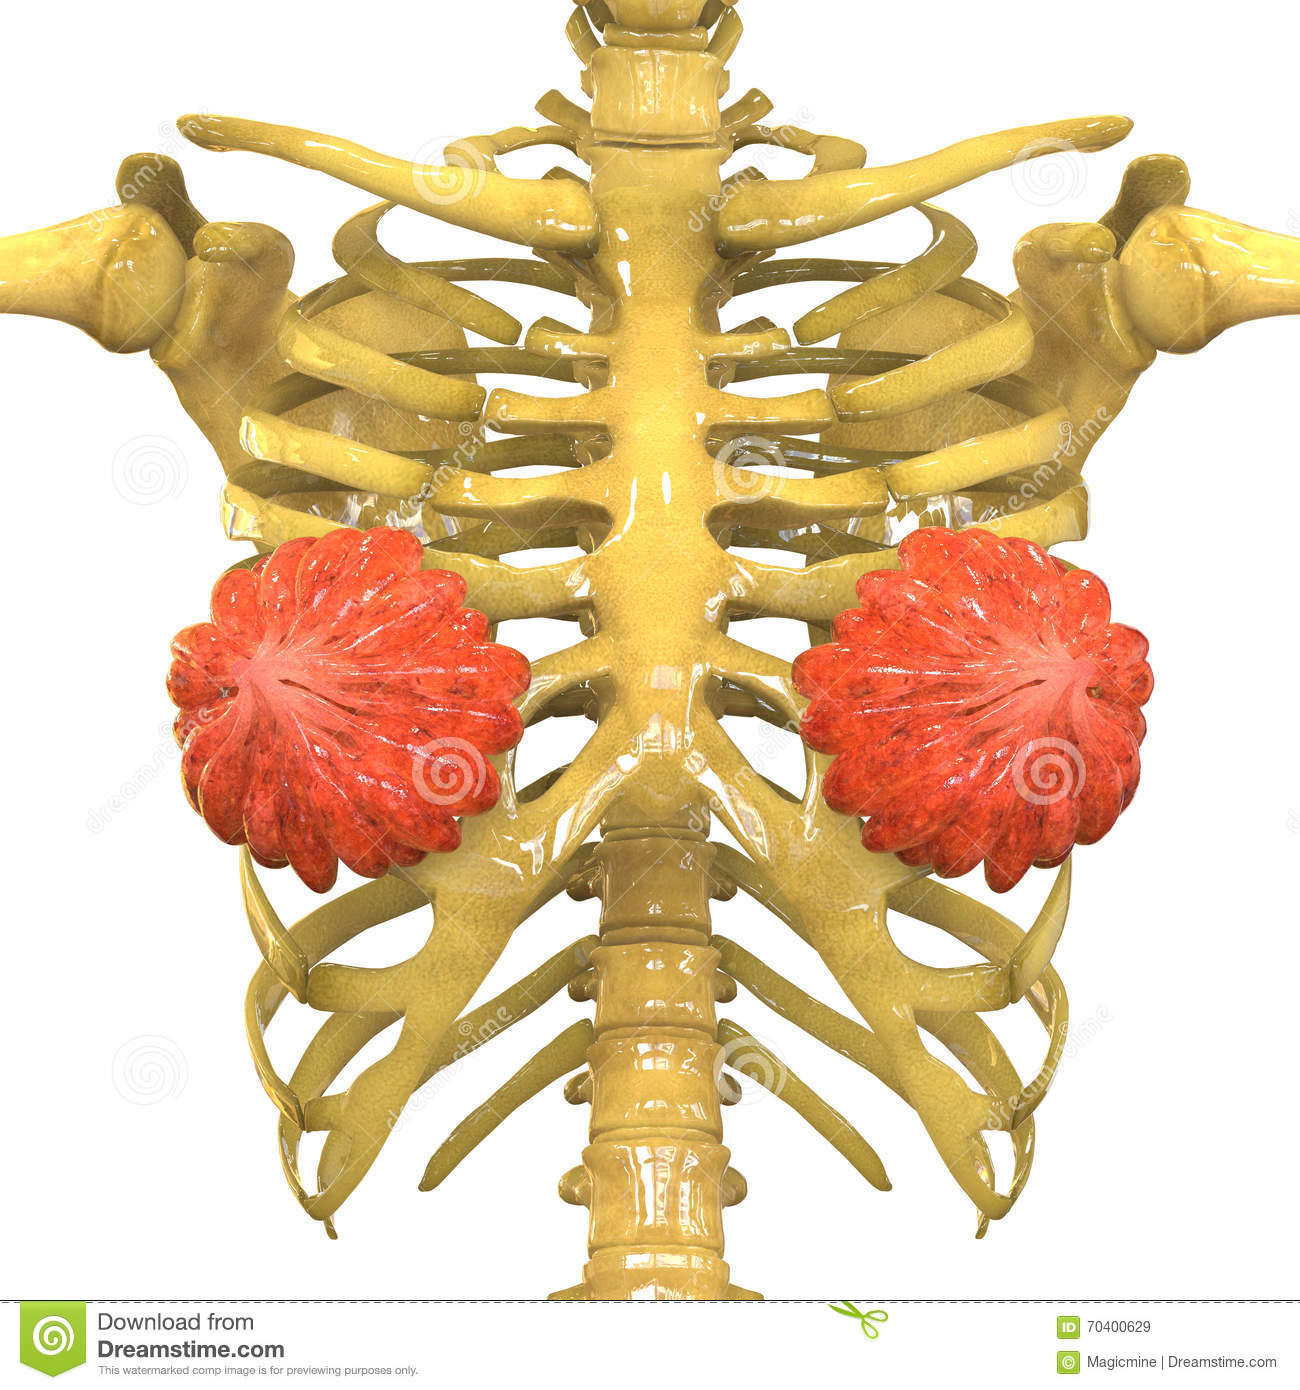 Female Body Organs (Mammary Glands) With Skeleton System Stock ...